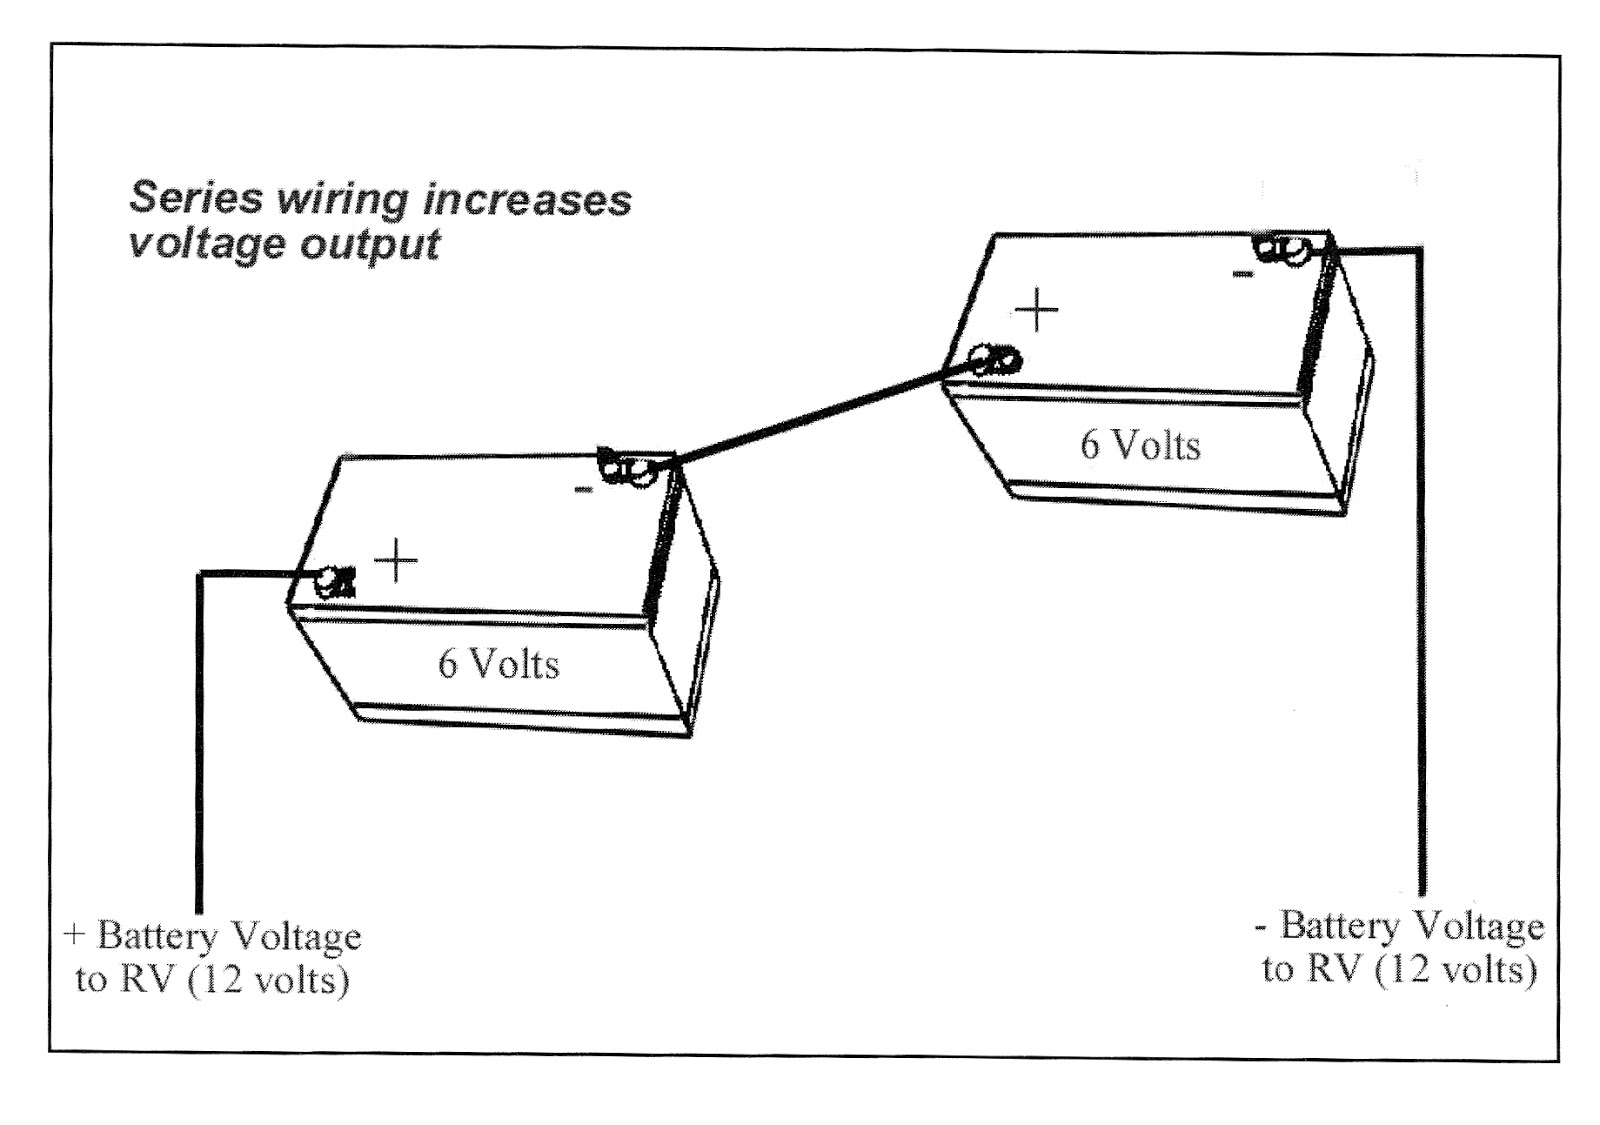 battery+series+wiring+diagram penny's tuppence (2 cents in brit) rv transmission 12v to 6v  at eliteediting.co